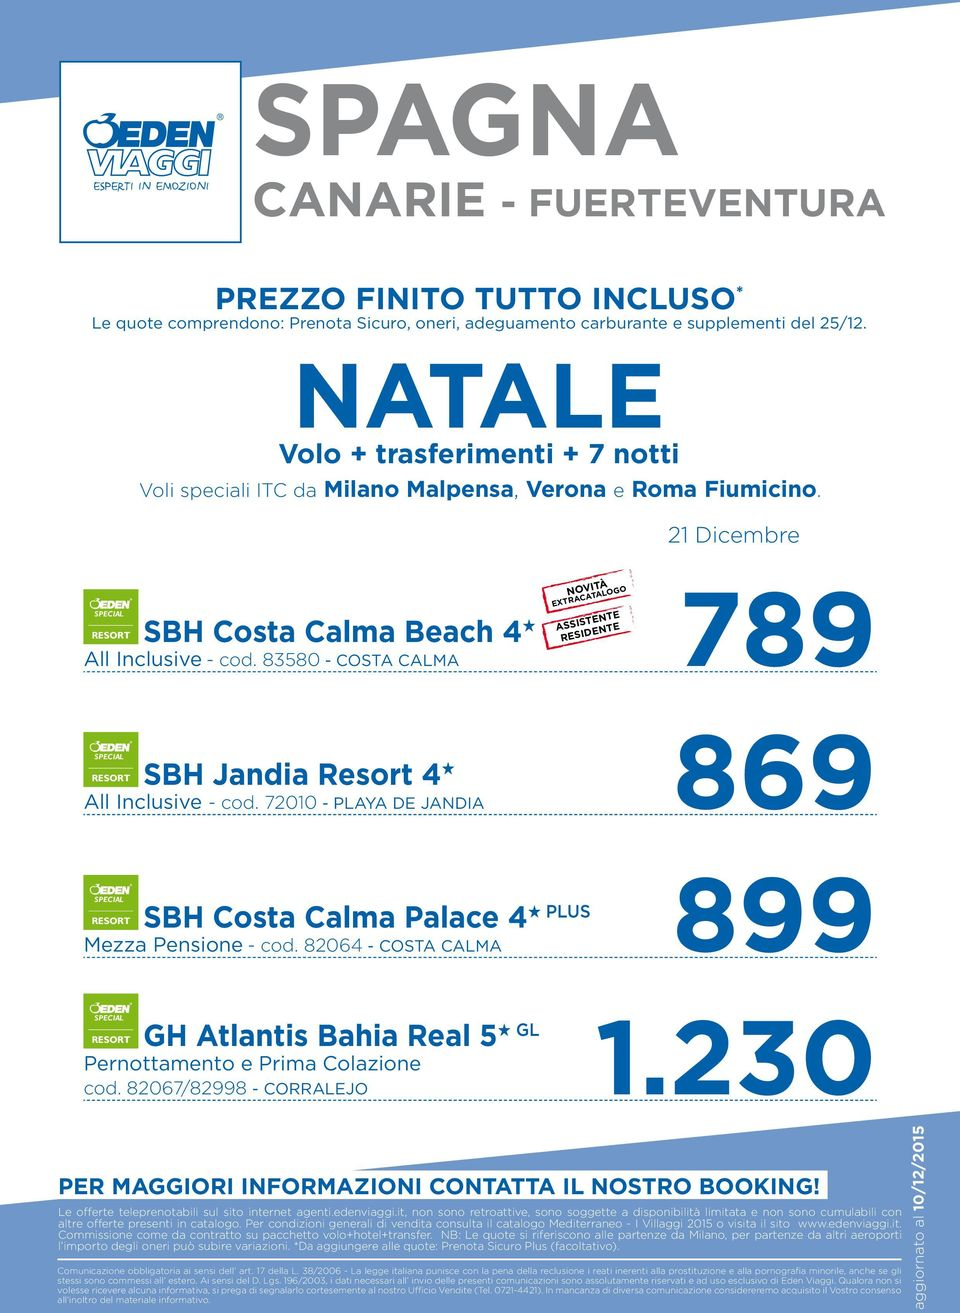 83580 - COSTA CALMA ASSISTENTE RESIDENTE 869 RESORT SBH Jandia Resort 4 H All Inclusive - cod. 72010 - PLAYA DE JANDIA 899 RESORT SBH Costa Calma Palace 4 H PLUS Mezza Pensione - cod.